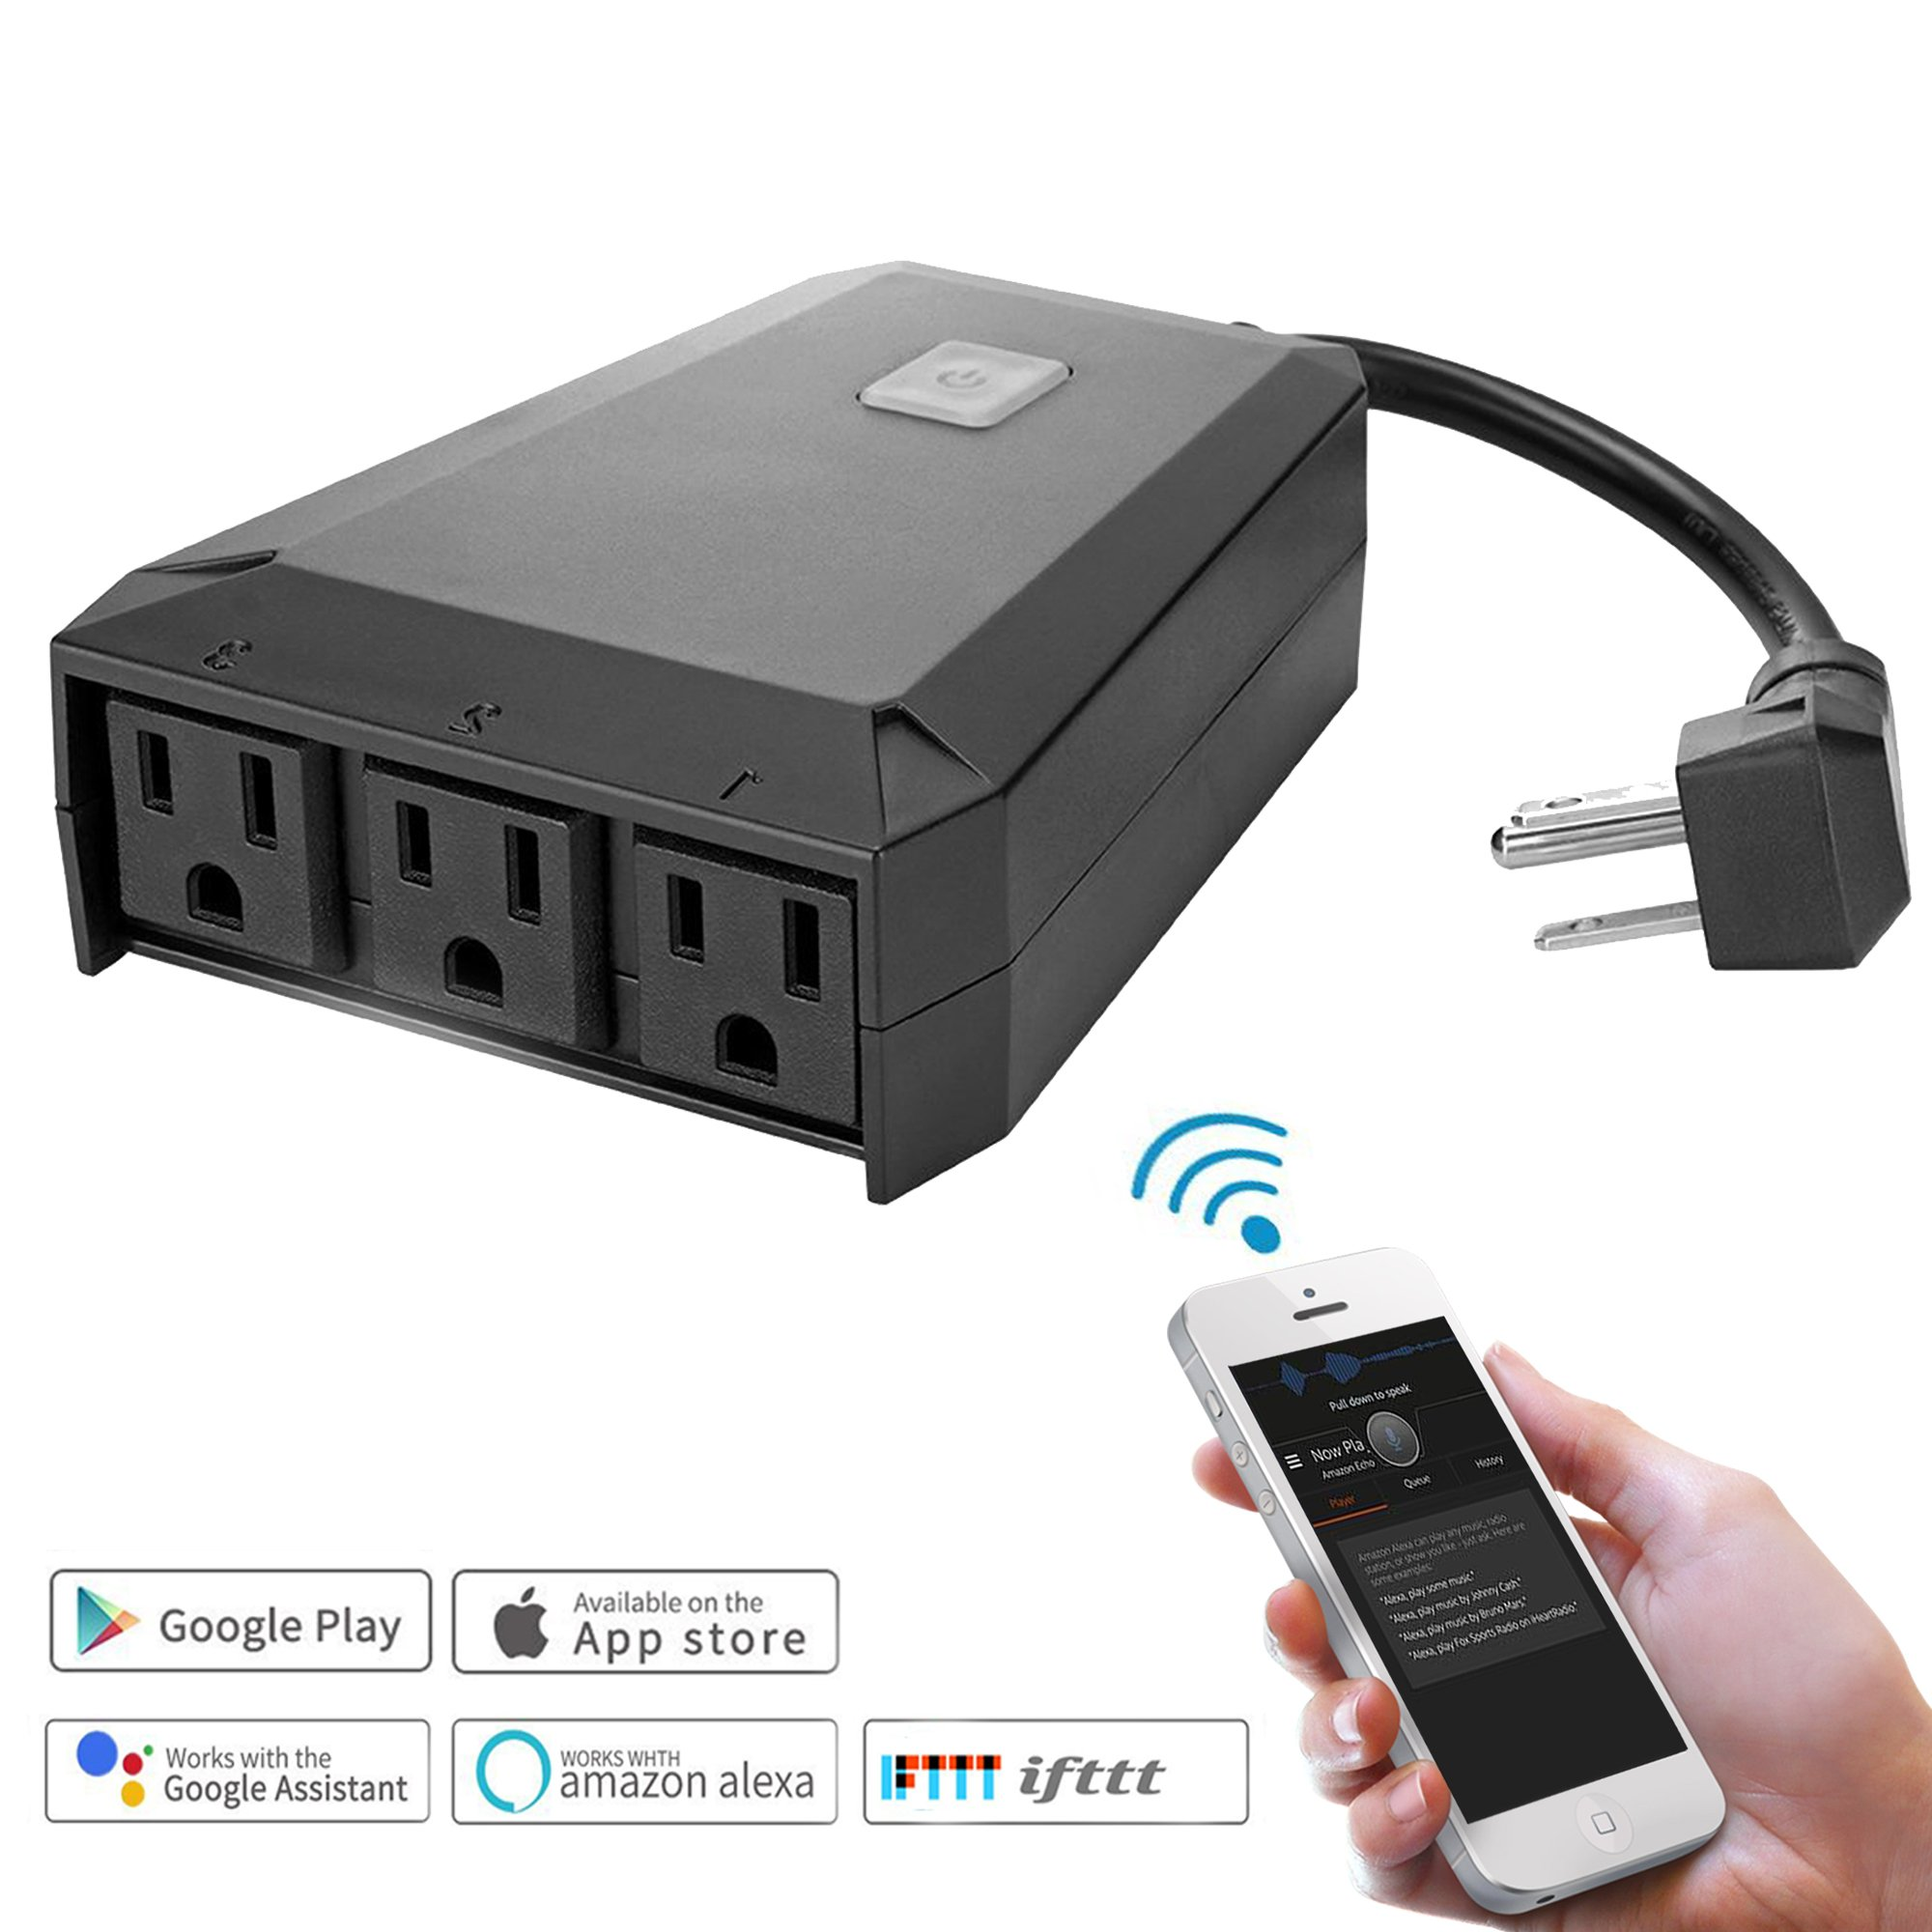 Waterproof Wifi Outdoor Plug Extender, Electric Multi Outlet Splitter 3 Way AC Power Socket Surge Protector Outside Light Timer Remote Control Work with Alexa Google US C128 Black